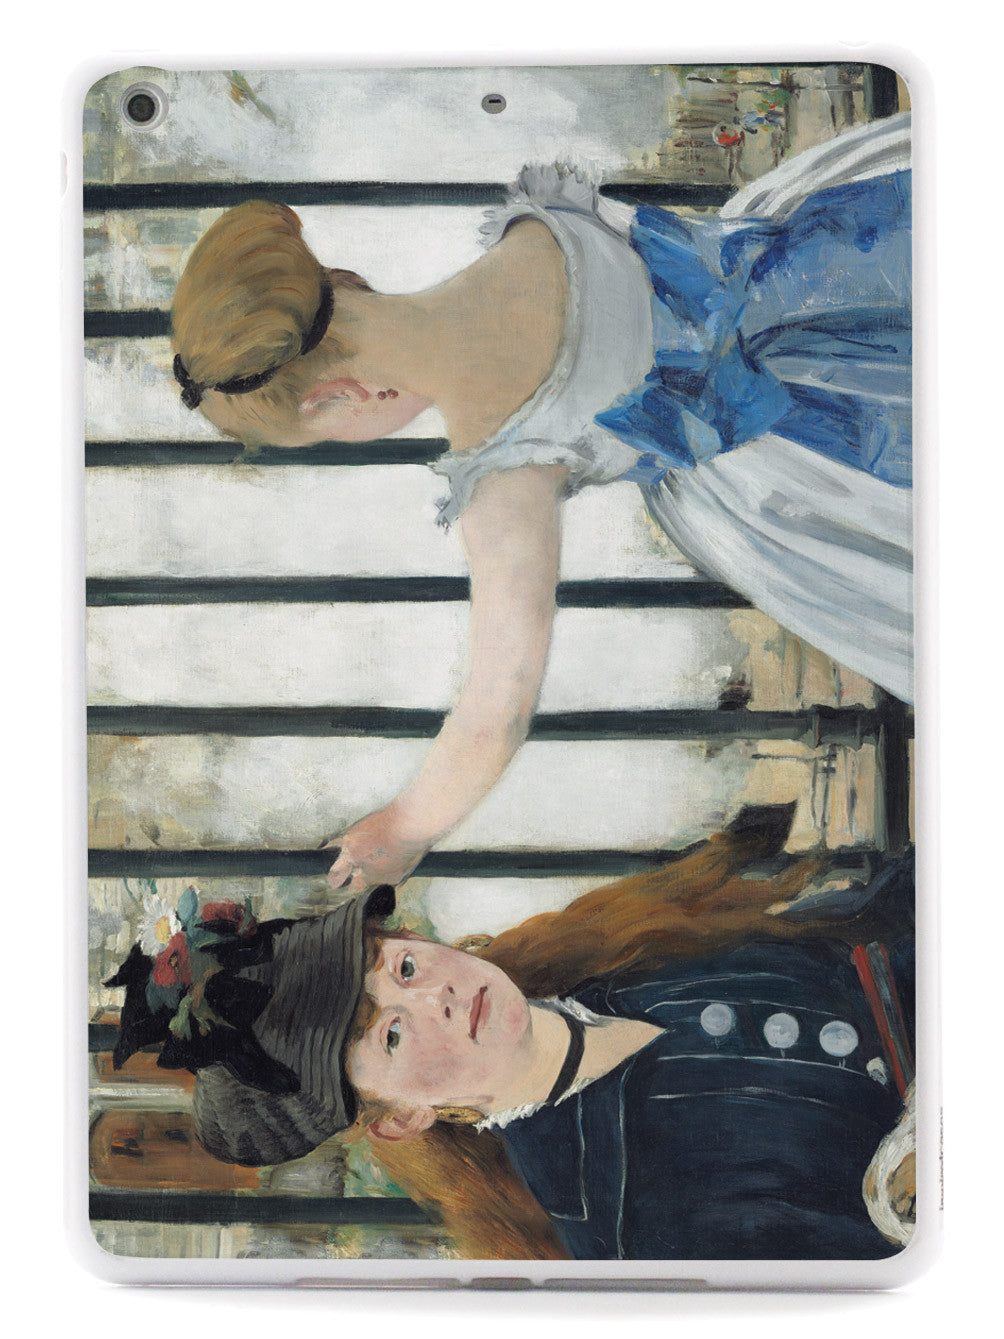 Edouard Manet - The Railway Case